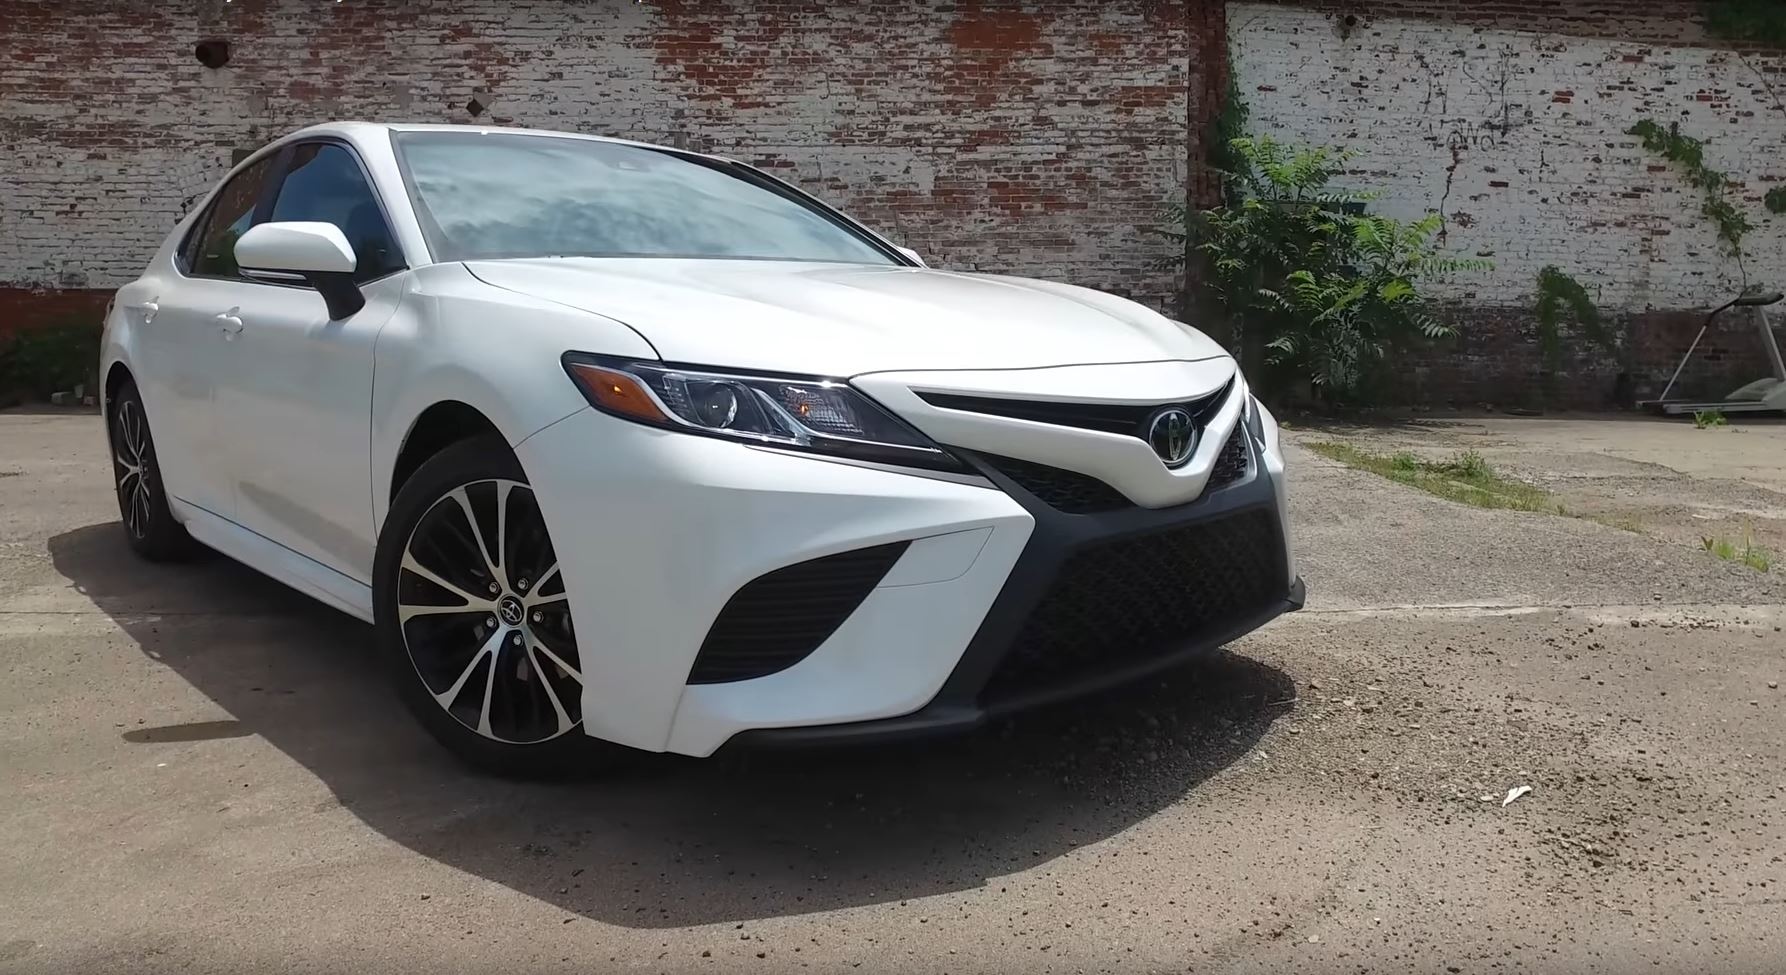 2018 Toyota Camry Is More Engaging And Better To Look At Says Consumer Reports